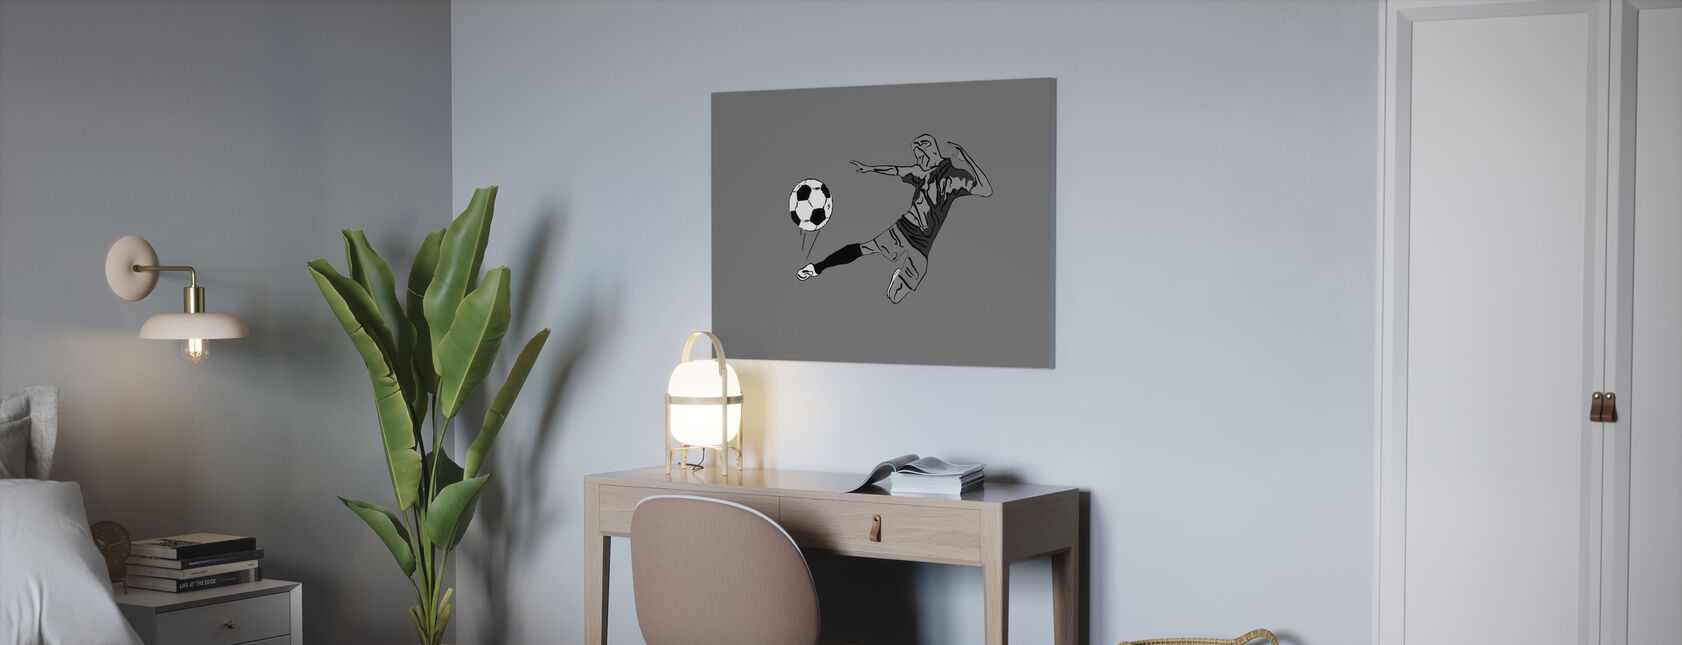 Kick It - Grijs - Canvas print - Kantoor